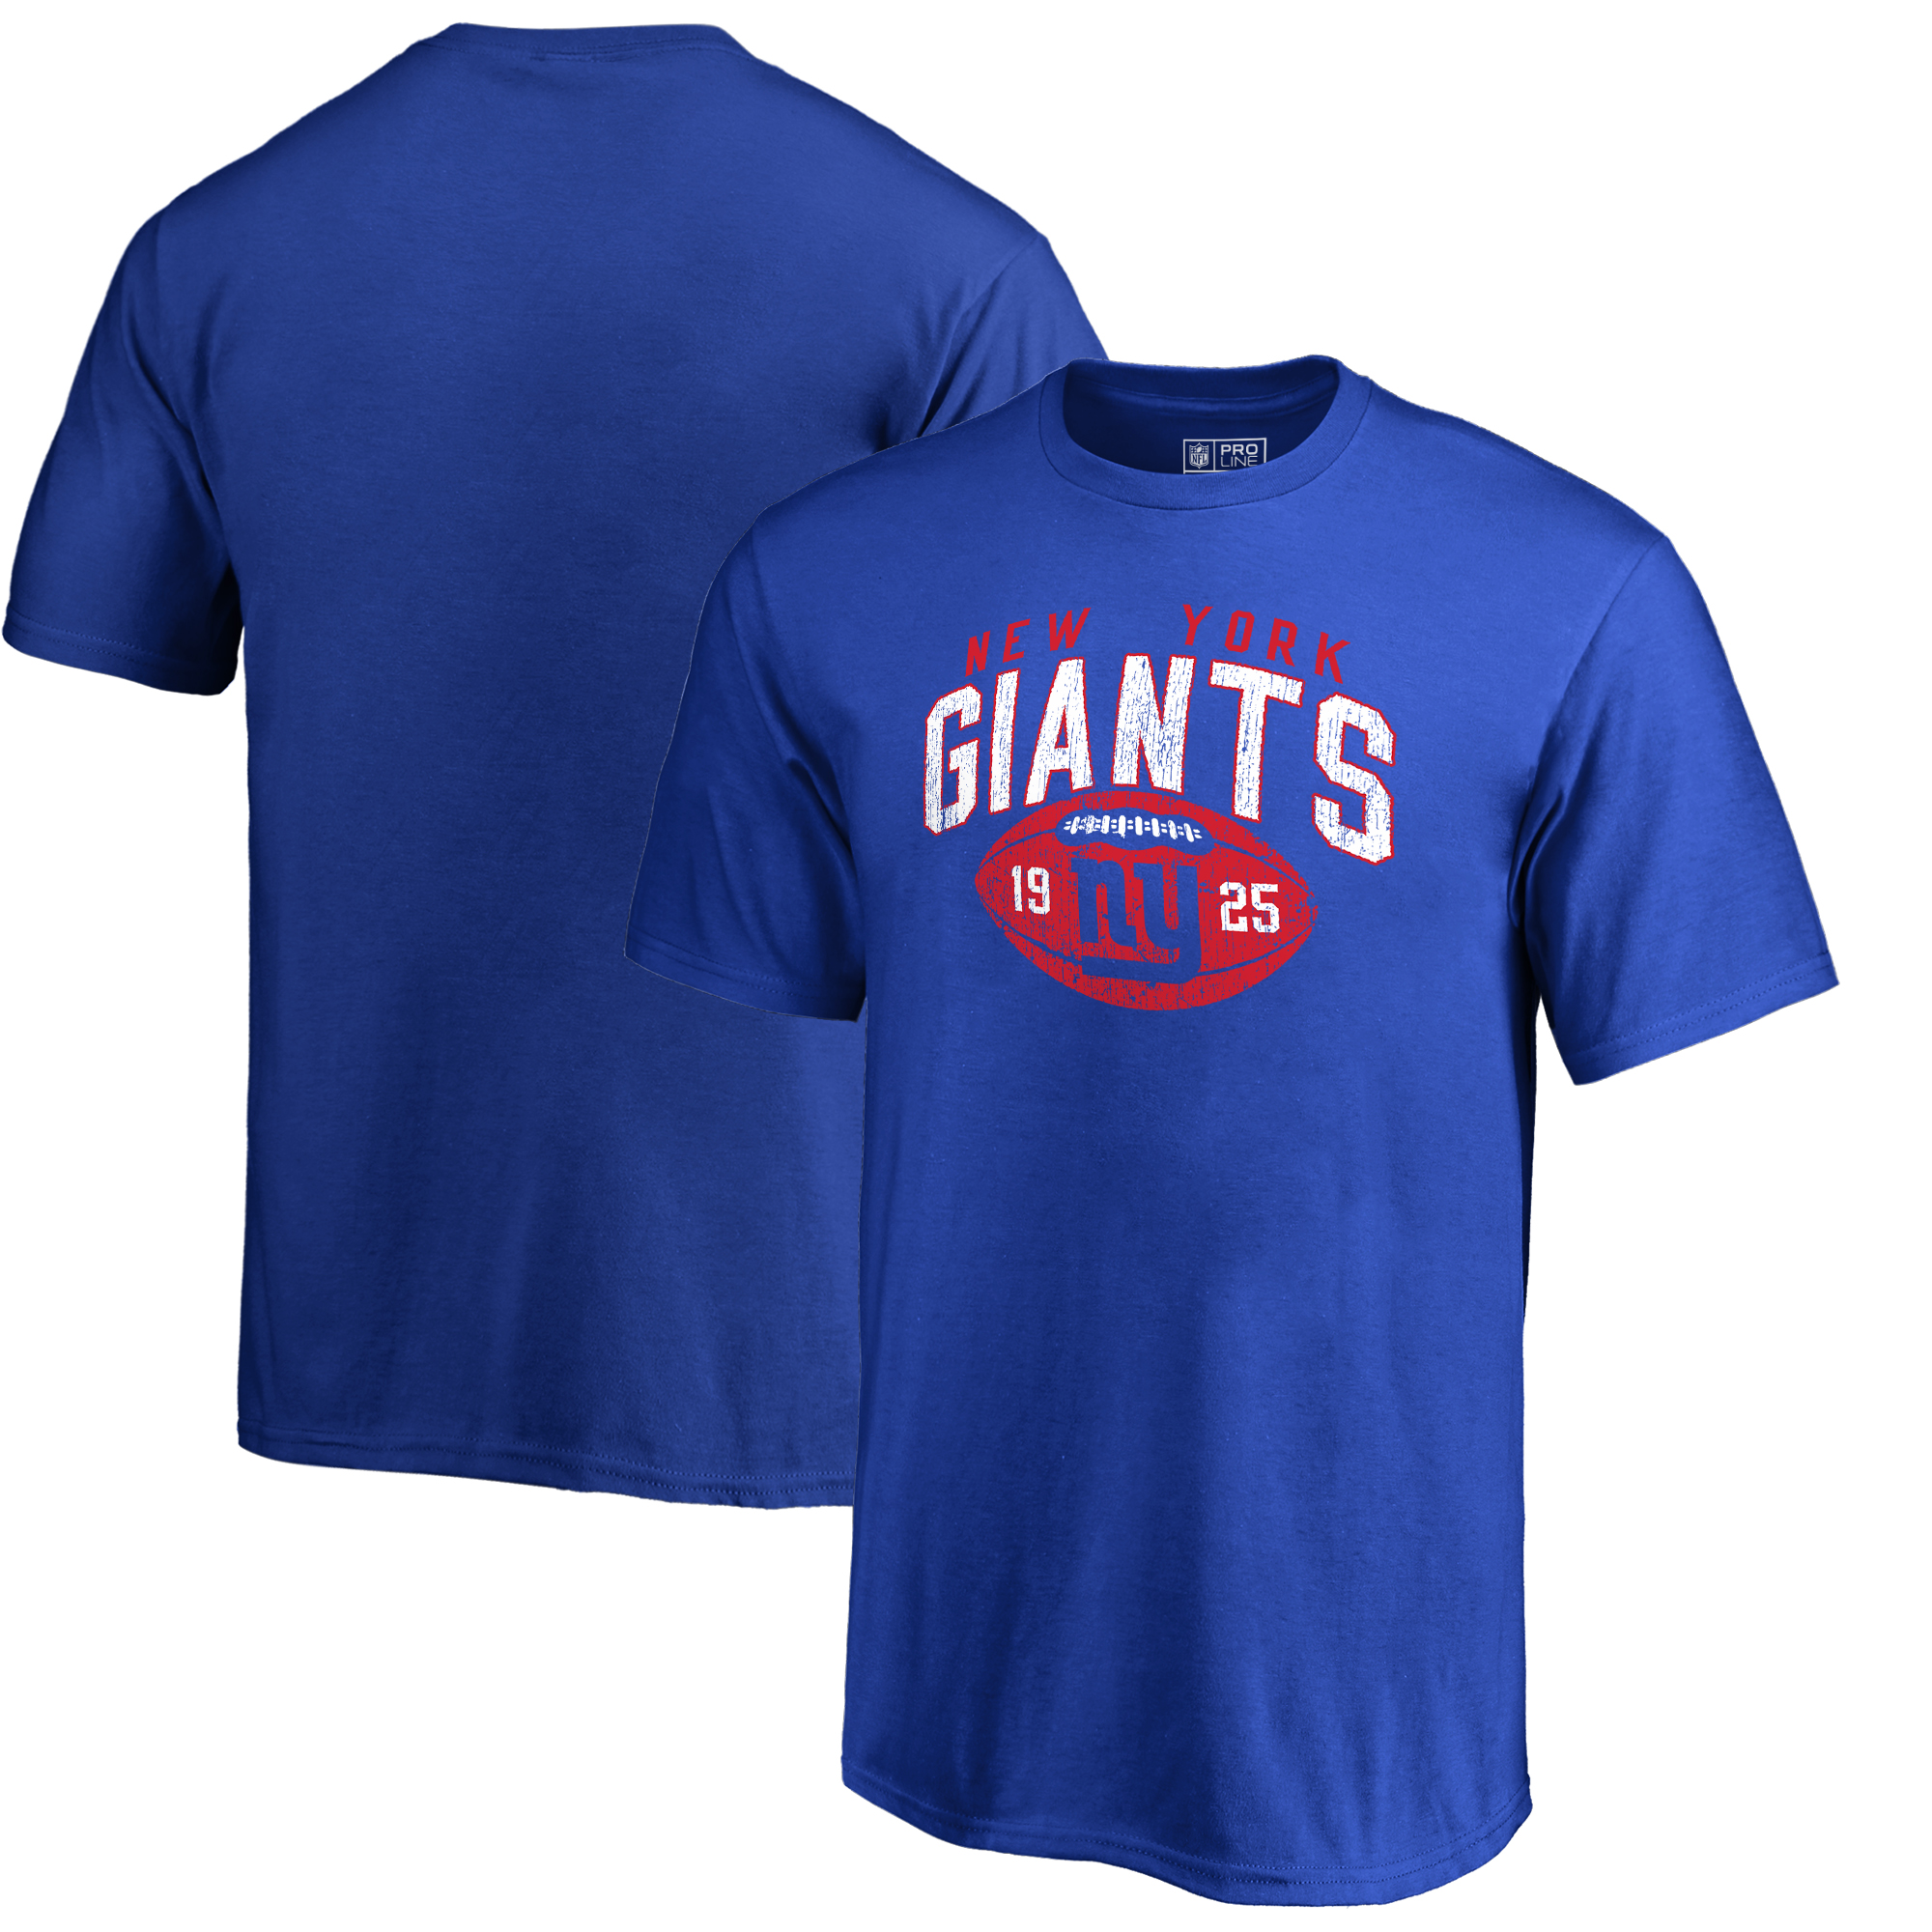 New York Giants NFL Pro Line by Fanatics Branded Youth Throwback Collection Coin Toss T-Shirt - Royal